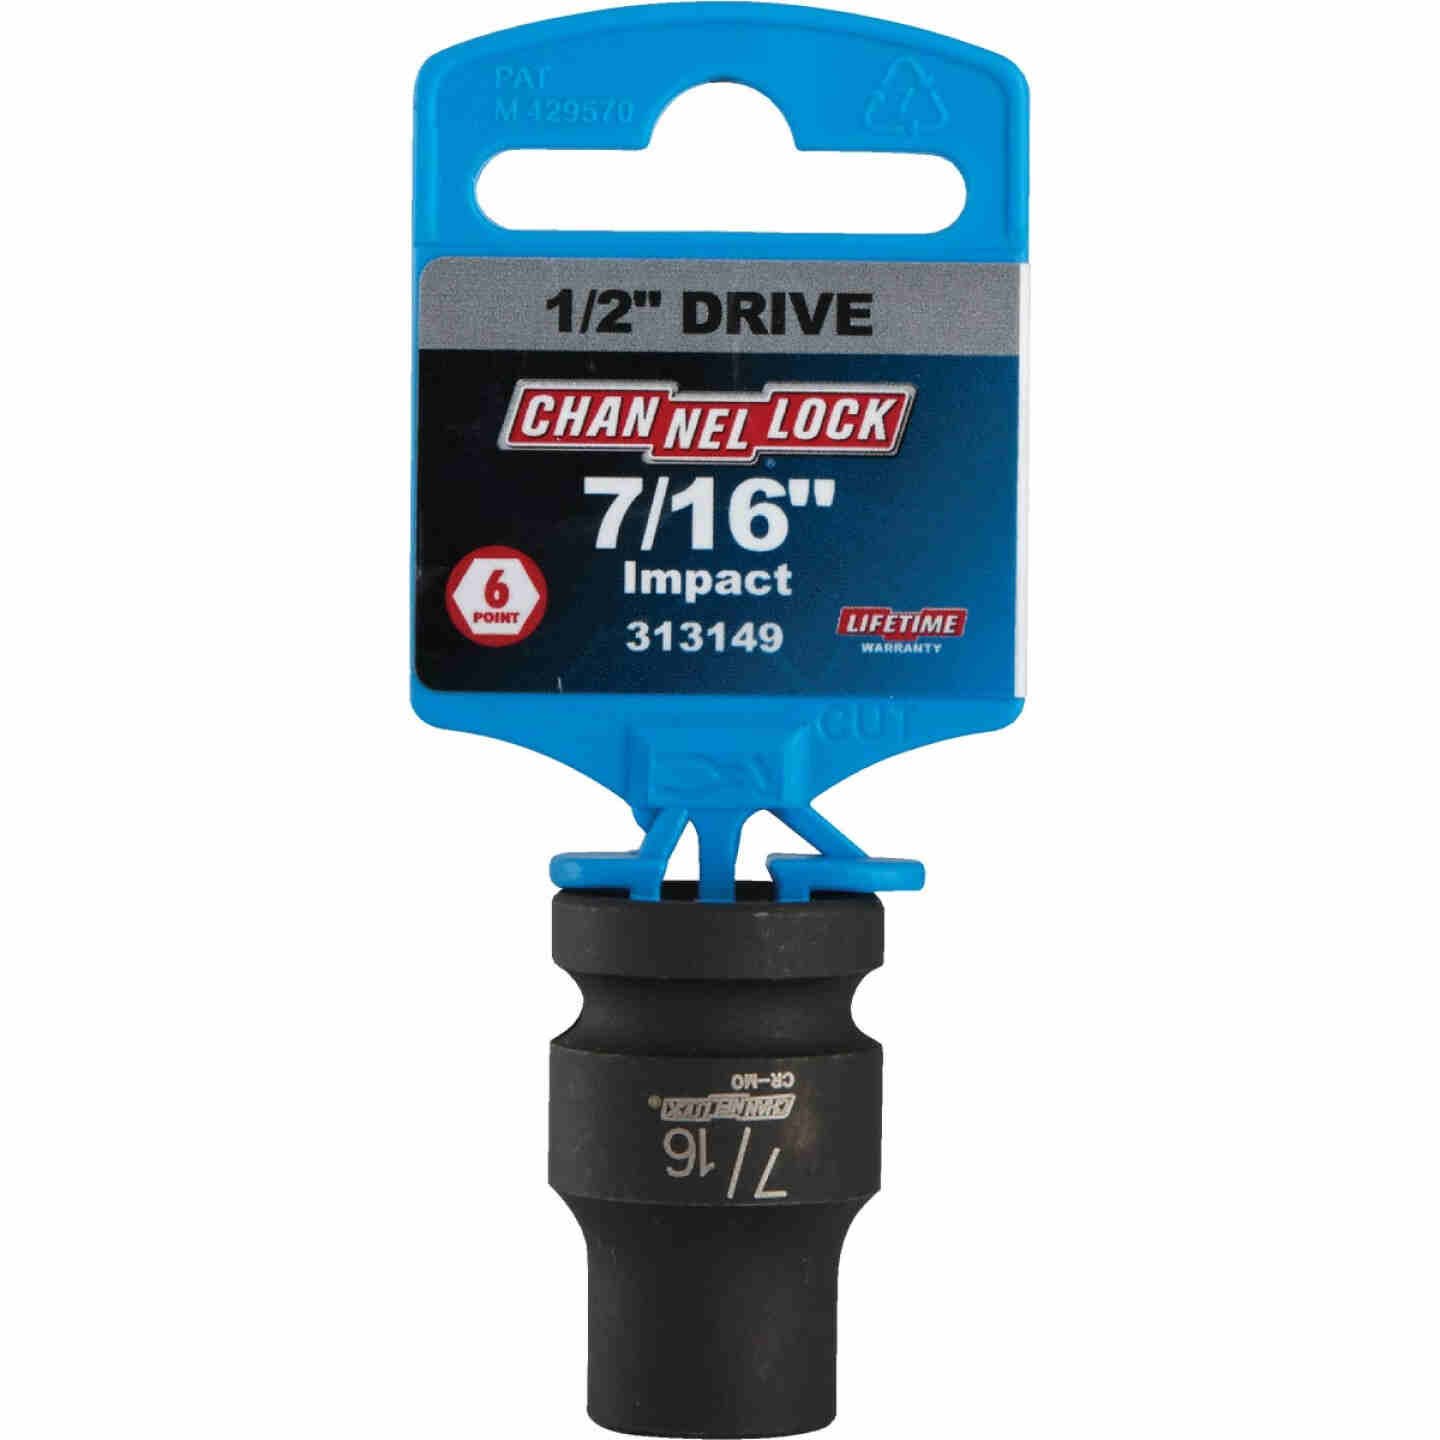 Channellock 1/2 In. Drive 7/16 In. 6-Point Shallow Standard Impact Socket Image 2